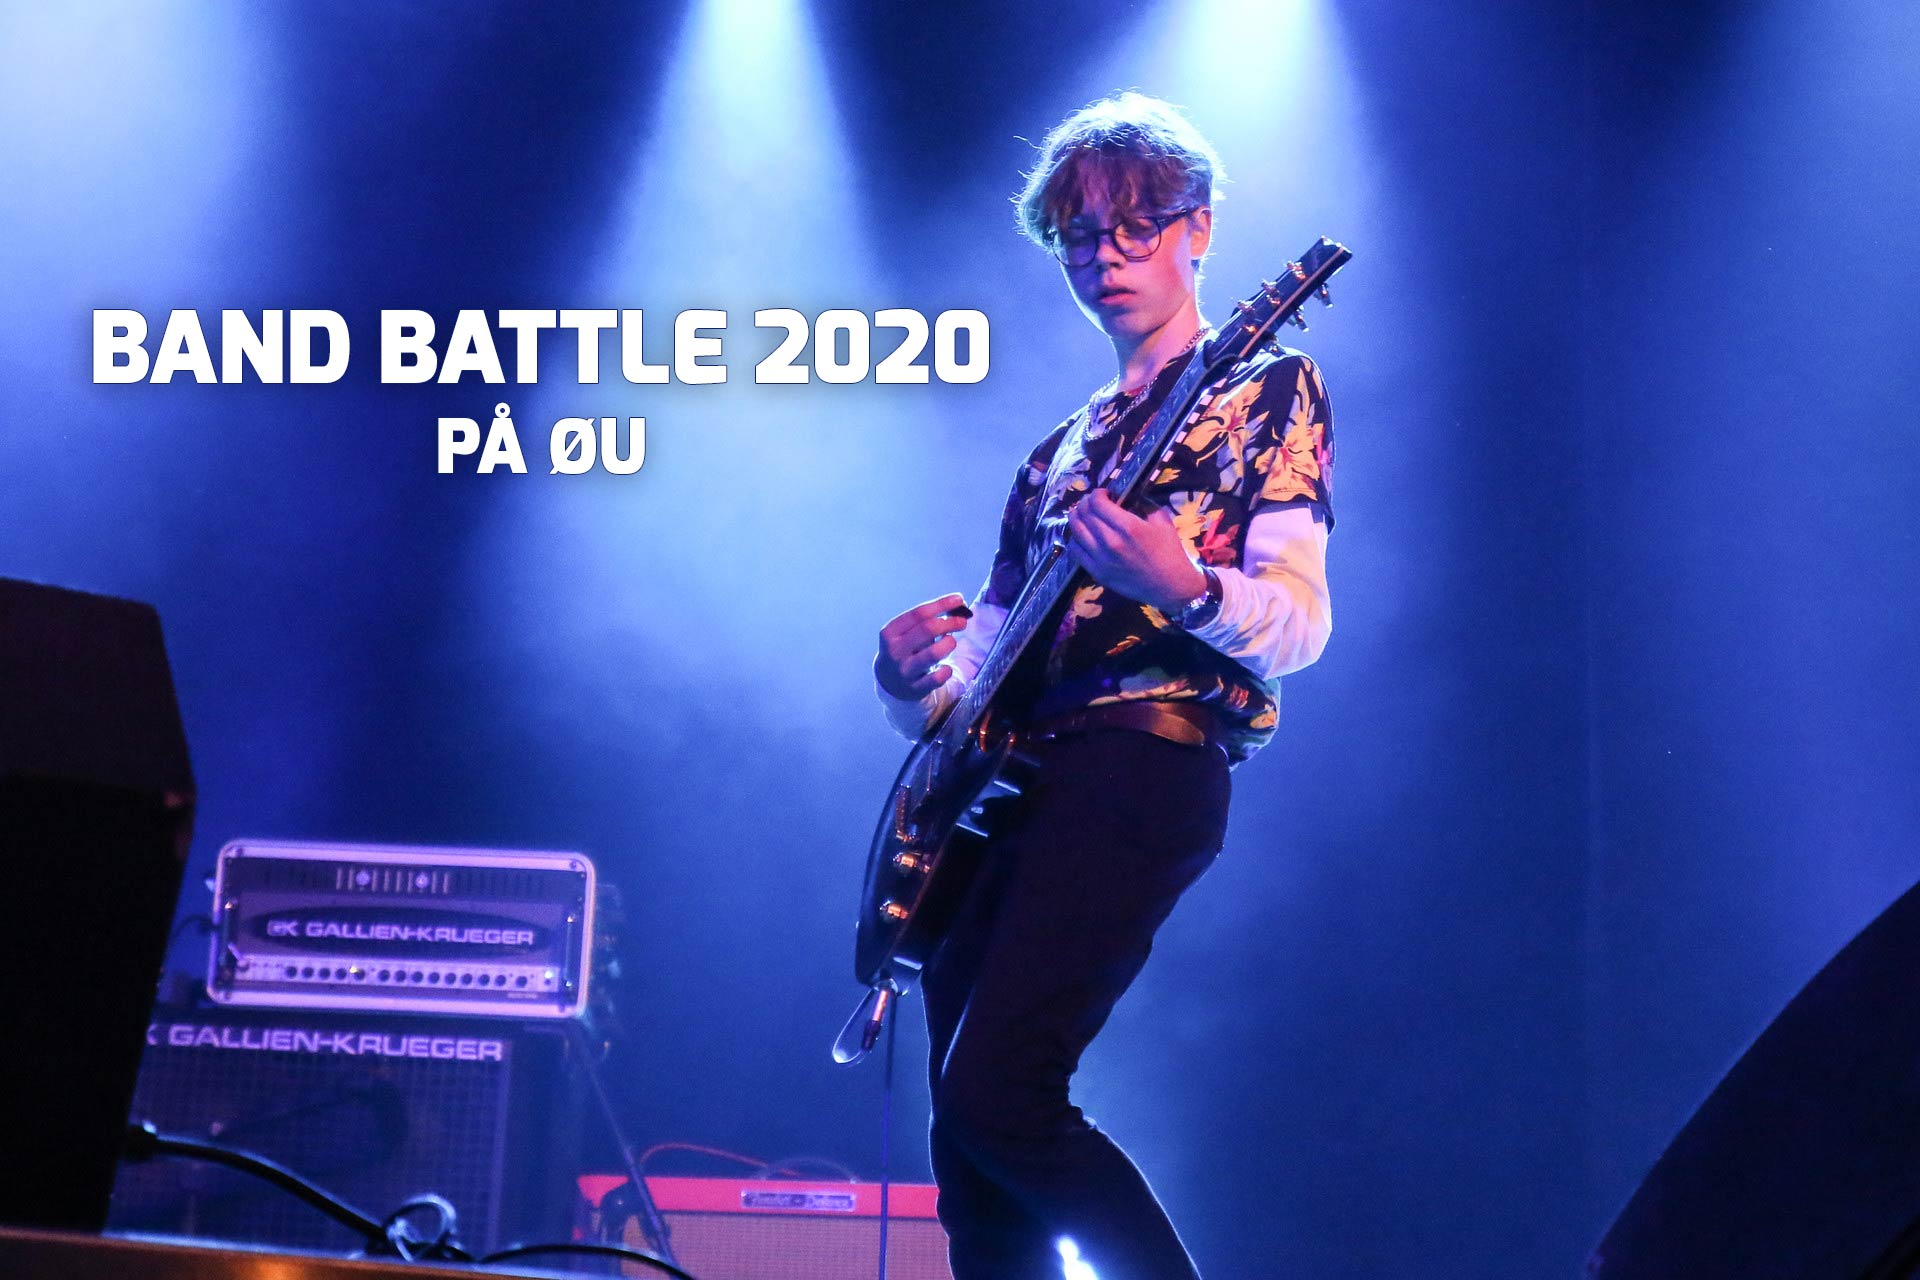 Efterskole band battle 2020